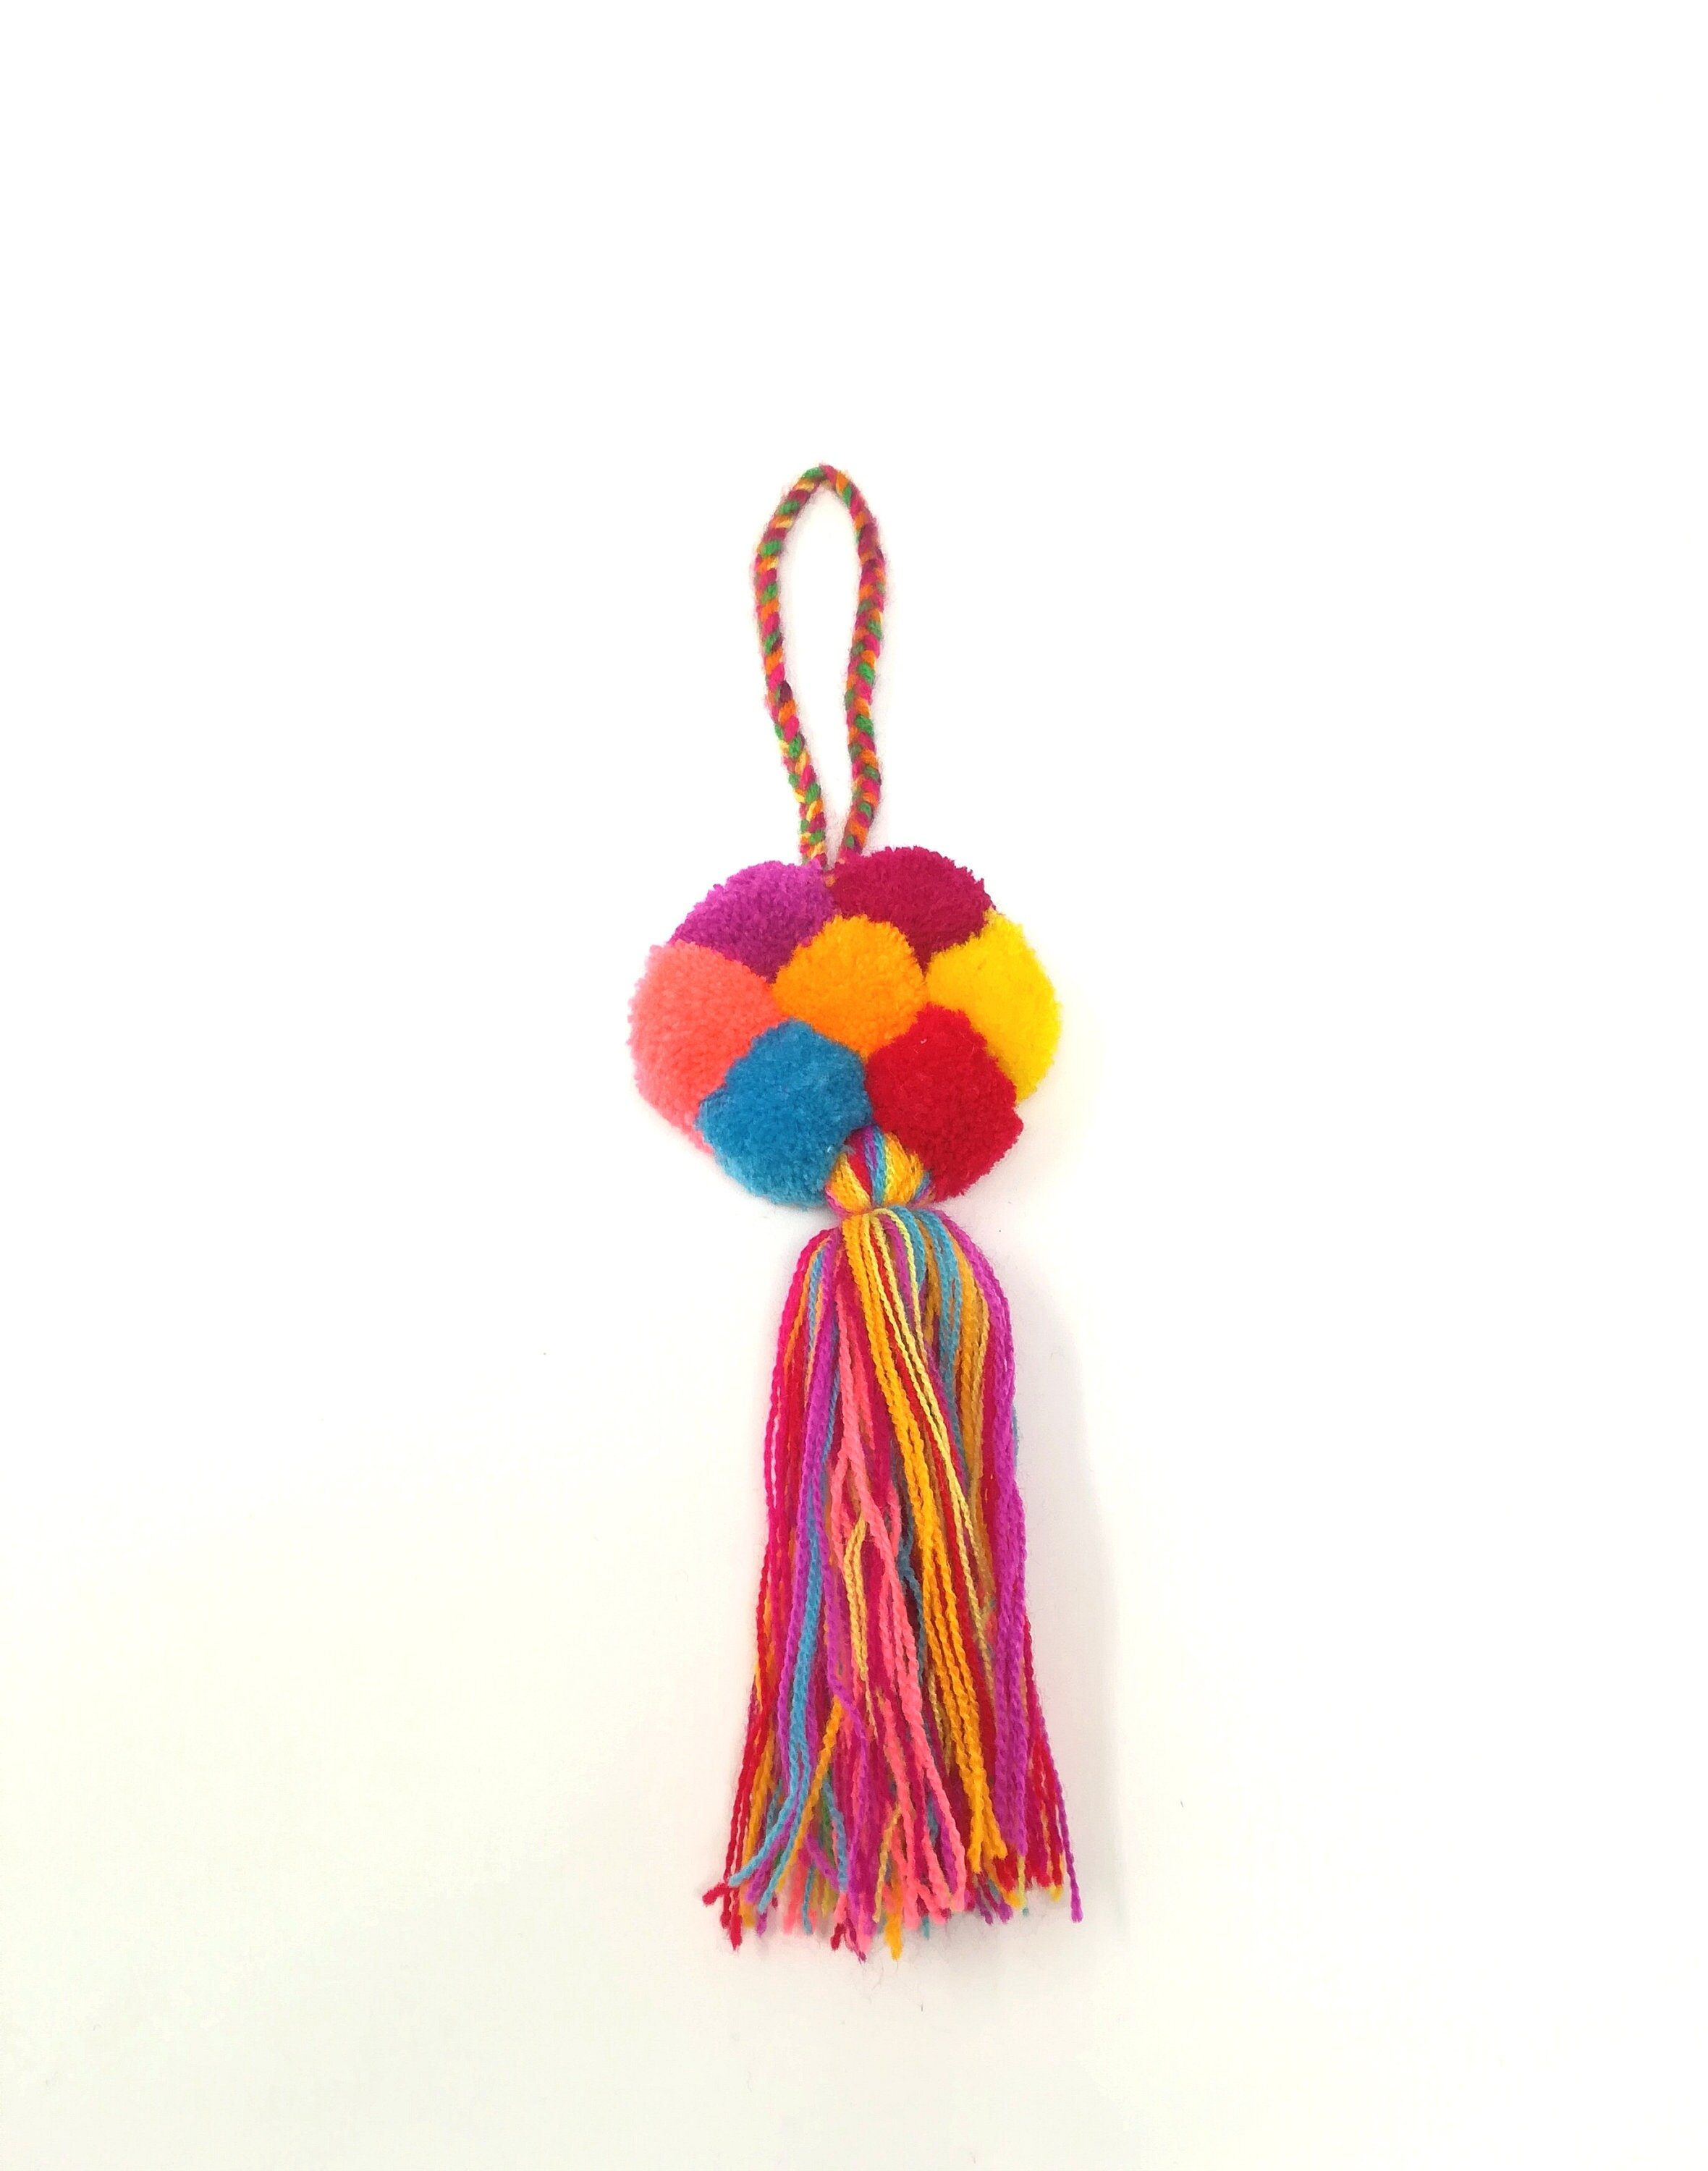 How to make jewelry with yarn pom poms for luggage